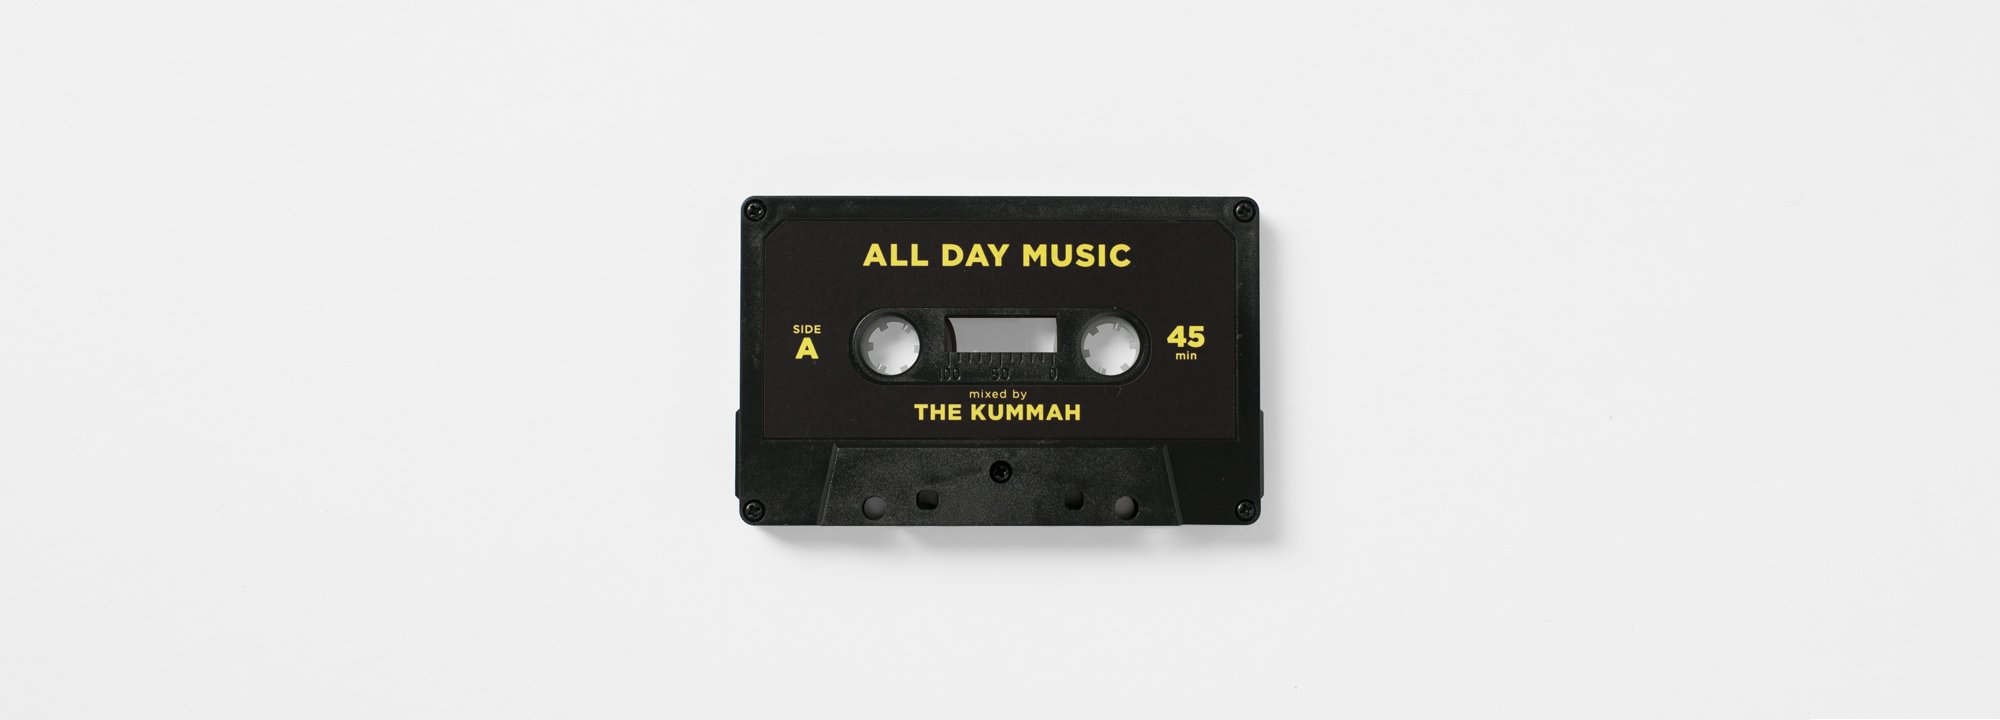 "【BROS限定】DL Mix ""ALL DAY MUSIC #3"" Mixed by THE KUMMAH"